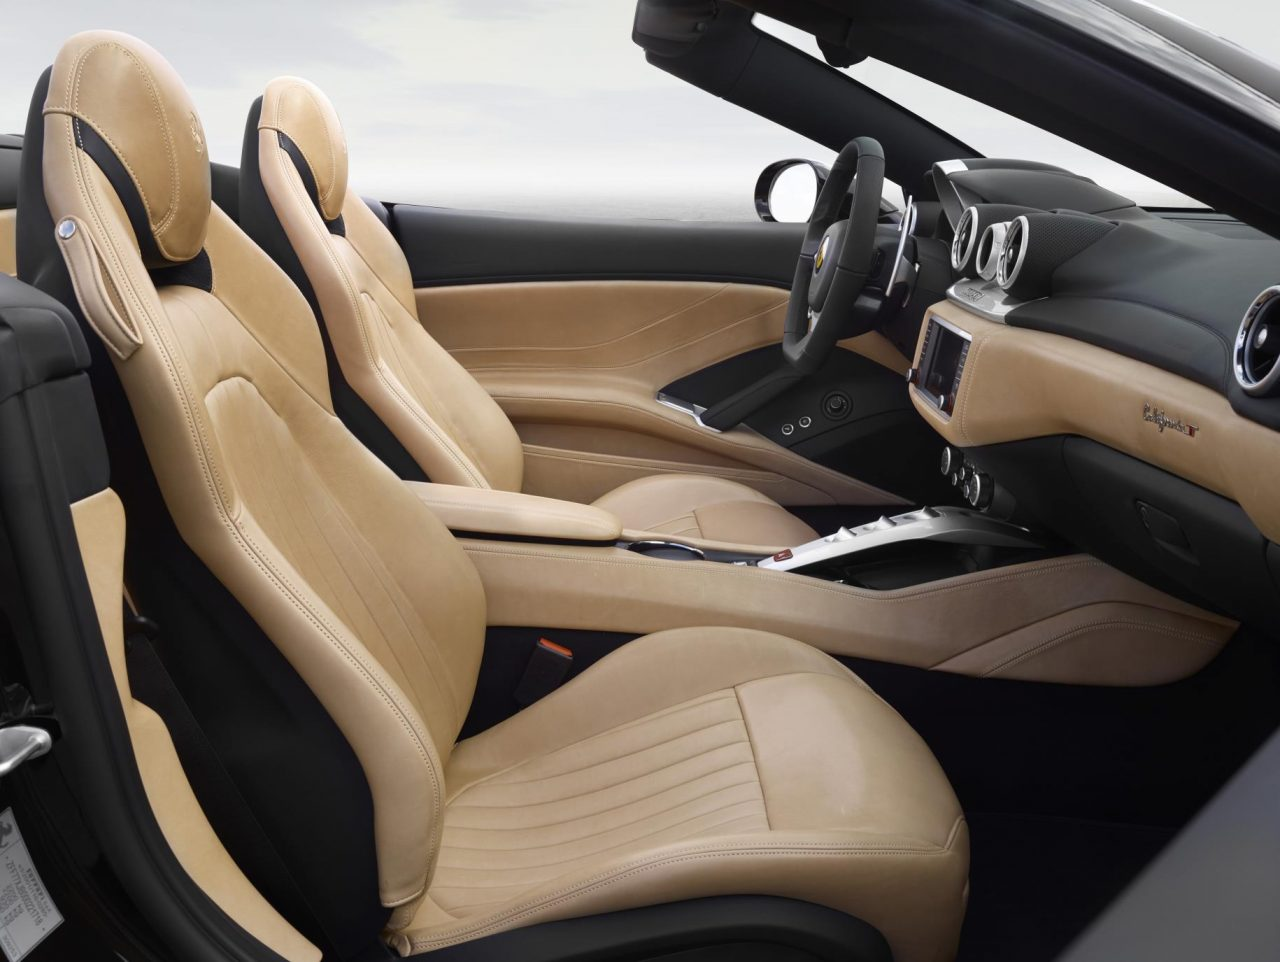 ferrari-california-70th-anniversary-edition-interior-1280x962